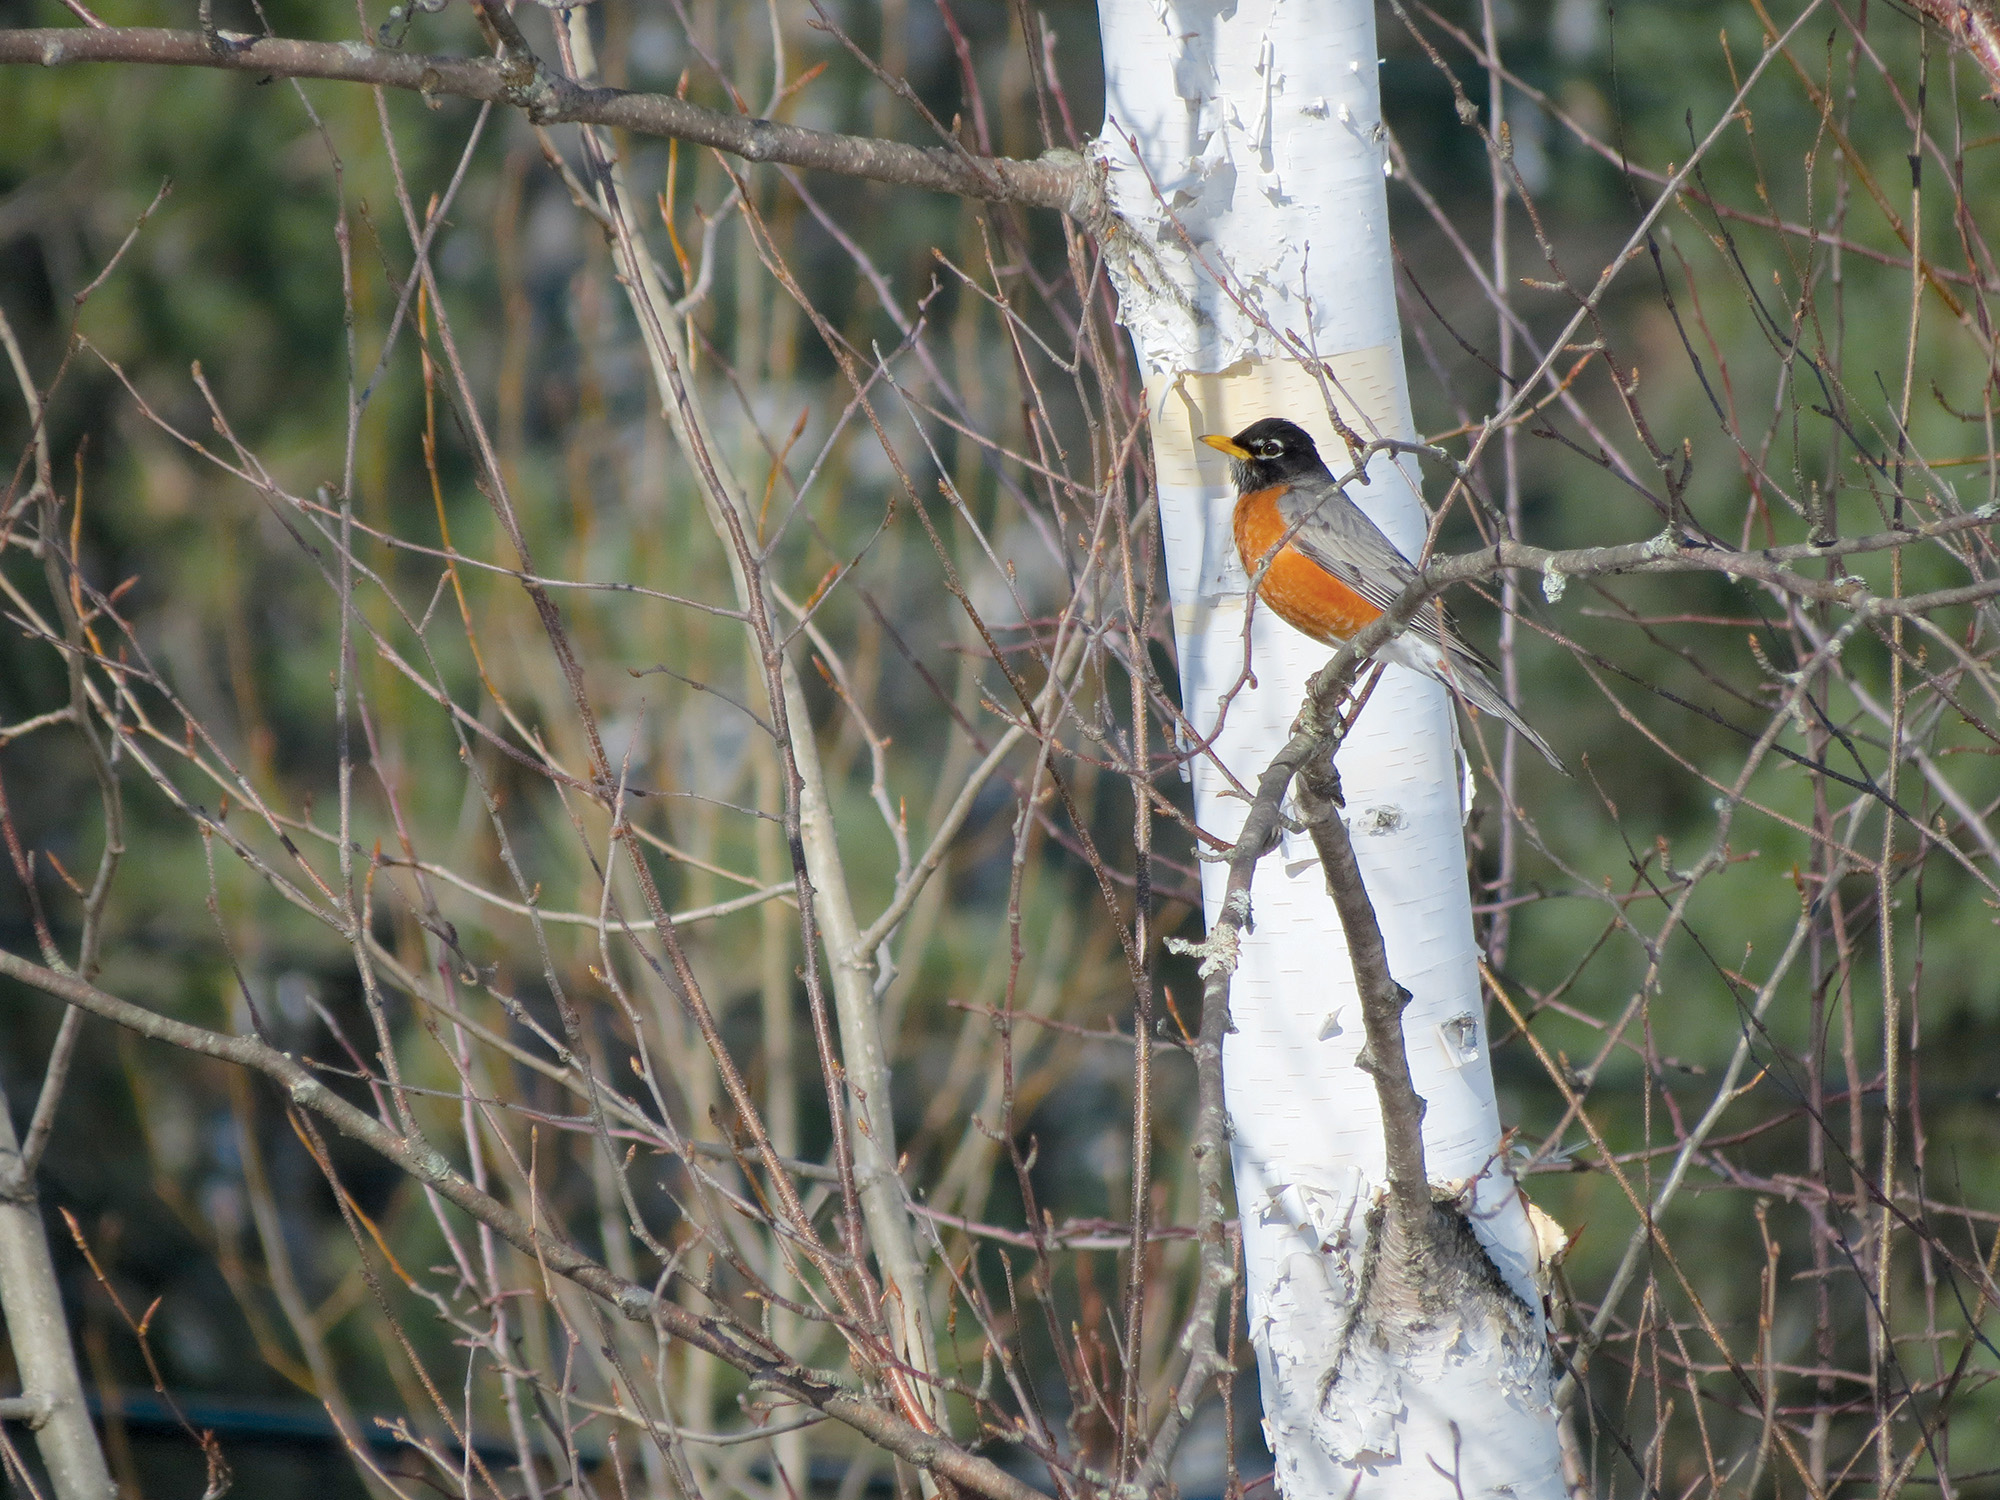 Robins are very territorial birds, and it is estimated that ten percent of them die defending territory from other Robins. They are also very prolific, living on every continent. Robins may find several mates in a season, and the male takes an active role in feeding the female as she nests.